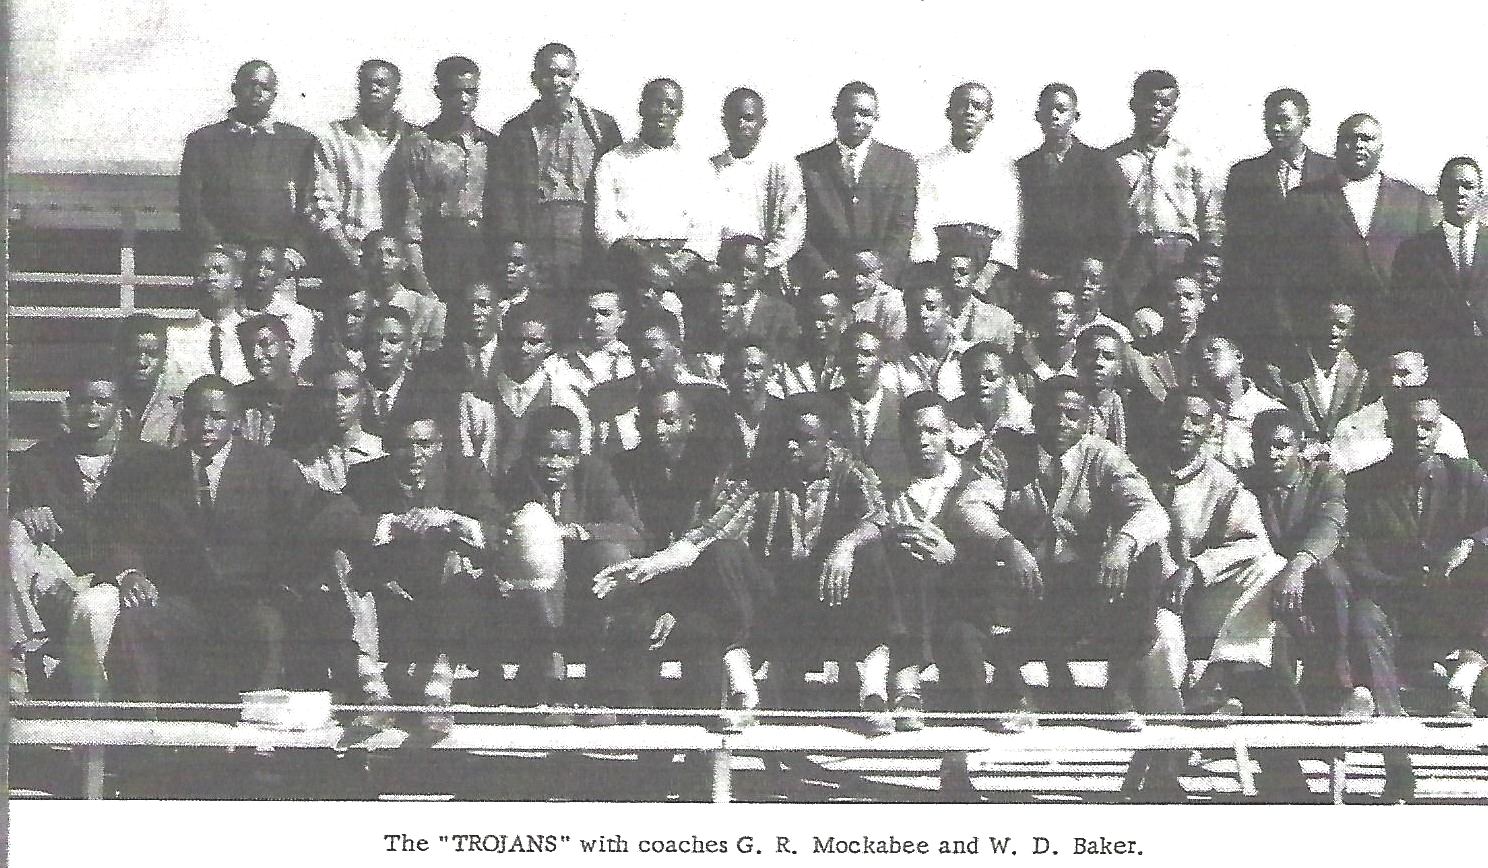 C:\Users\elmetra patterson\Pictures\Trojan football 1962.jpg